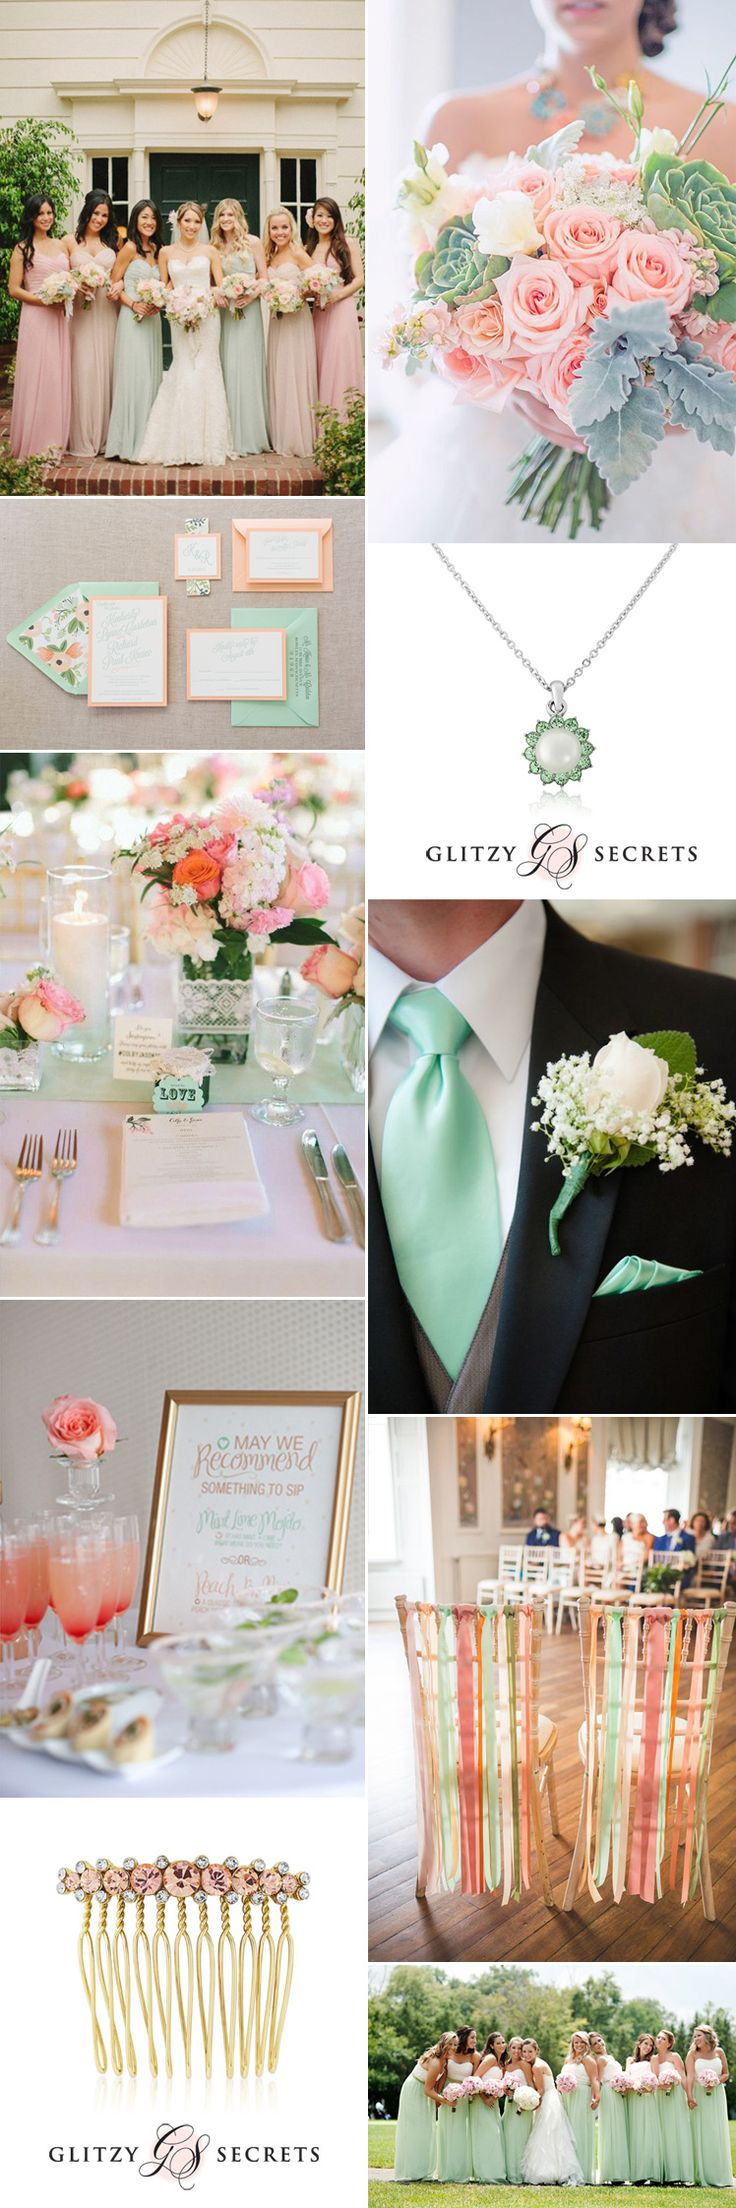 957 best Wedding INSPIRATION images on Pinterest | Wedding ideas ...